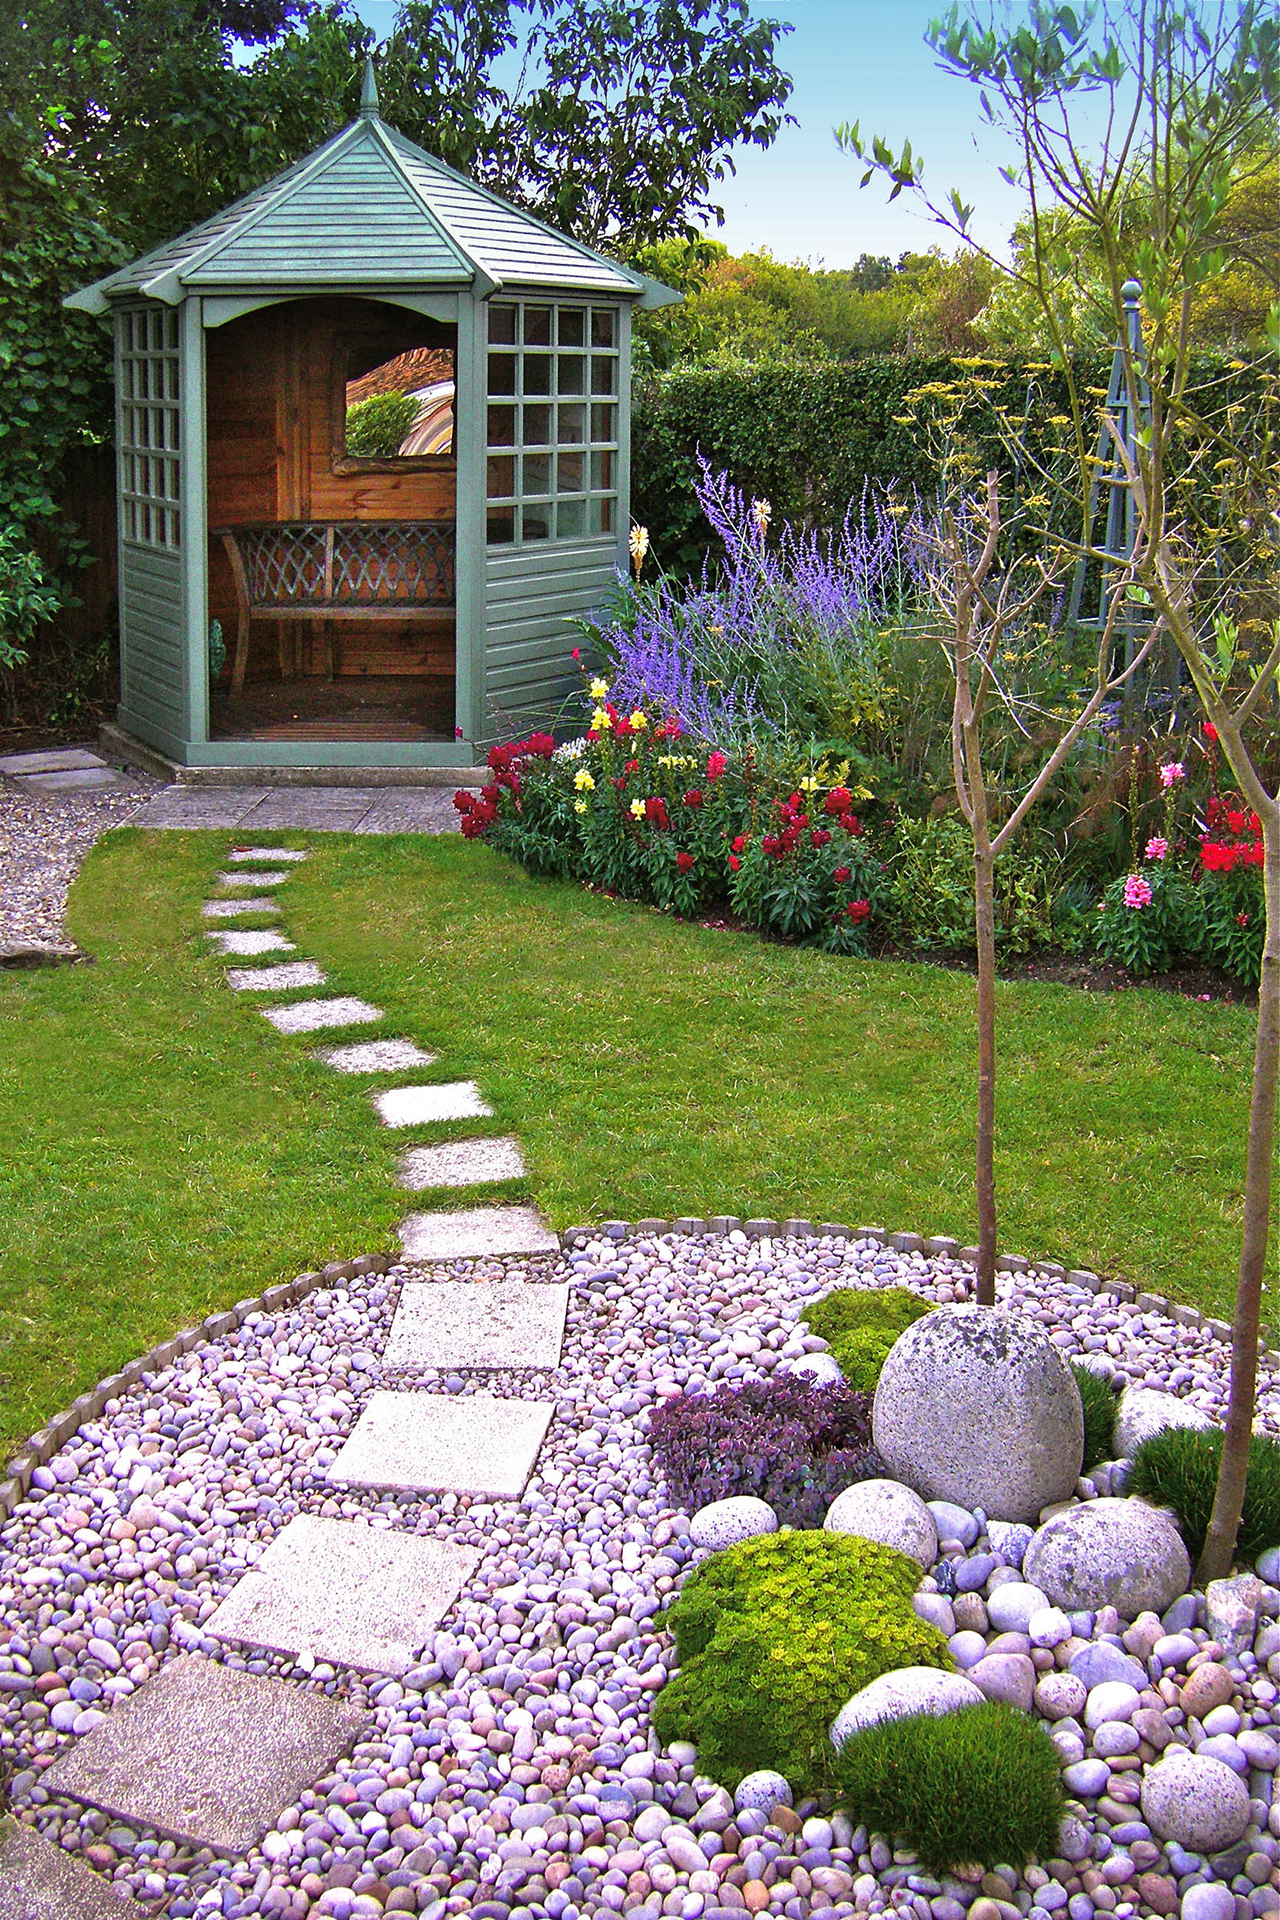 Most Beautiful Backyard Landscaping Ideas Carehomedecor throughout 15 Awesome Ideas How to Upgrade Beautiful Backyard Landscaping Ideas